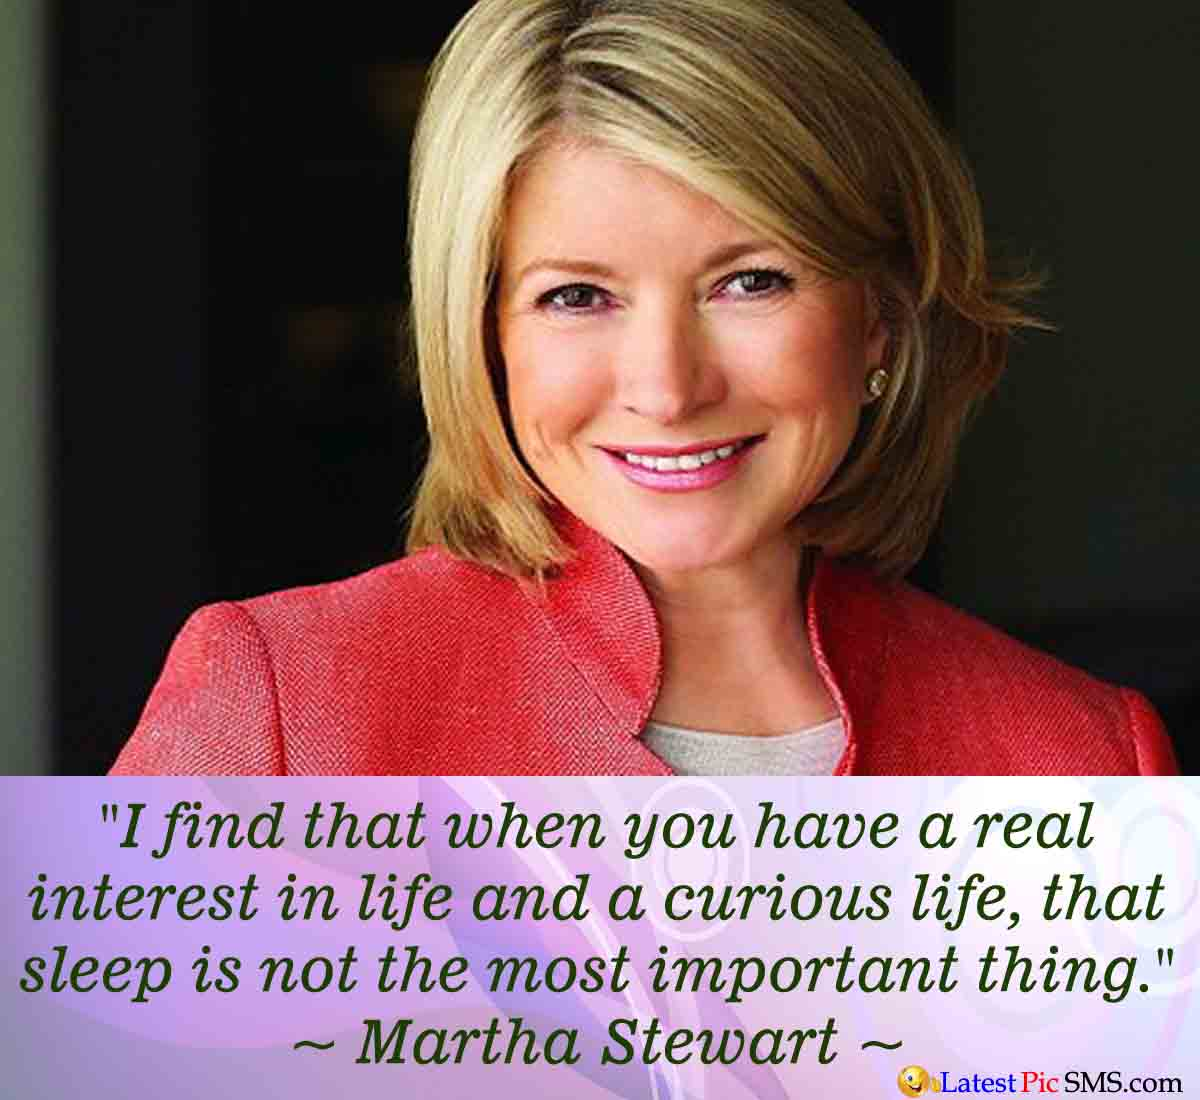 Martha Stewart life quote - Thoughts on Life Images for Whatsapp and Facebook